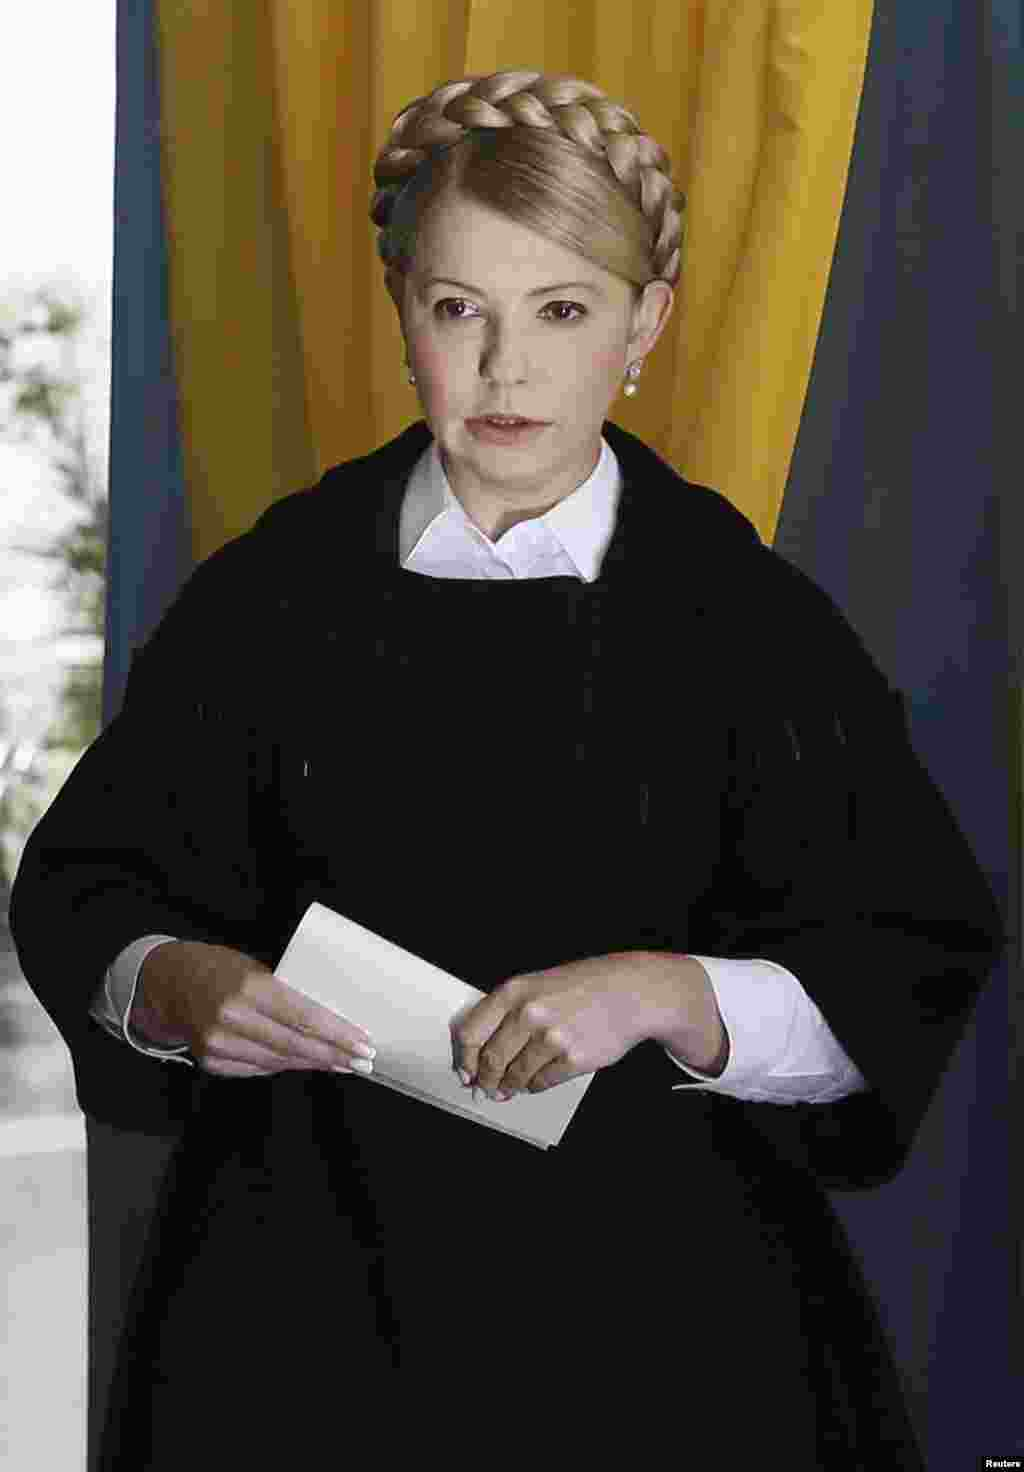 Former Ukrainian Prime Minister Yulia Tymoshenko, leader of the Batkivshchyna (Fatherland) party, holds a ballot at a polling station during a parliamentary election in Dnipropetrovsk, Oct. 26, 2014.